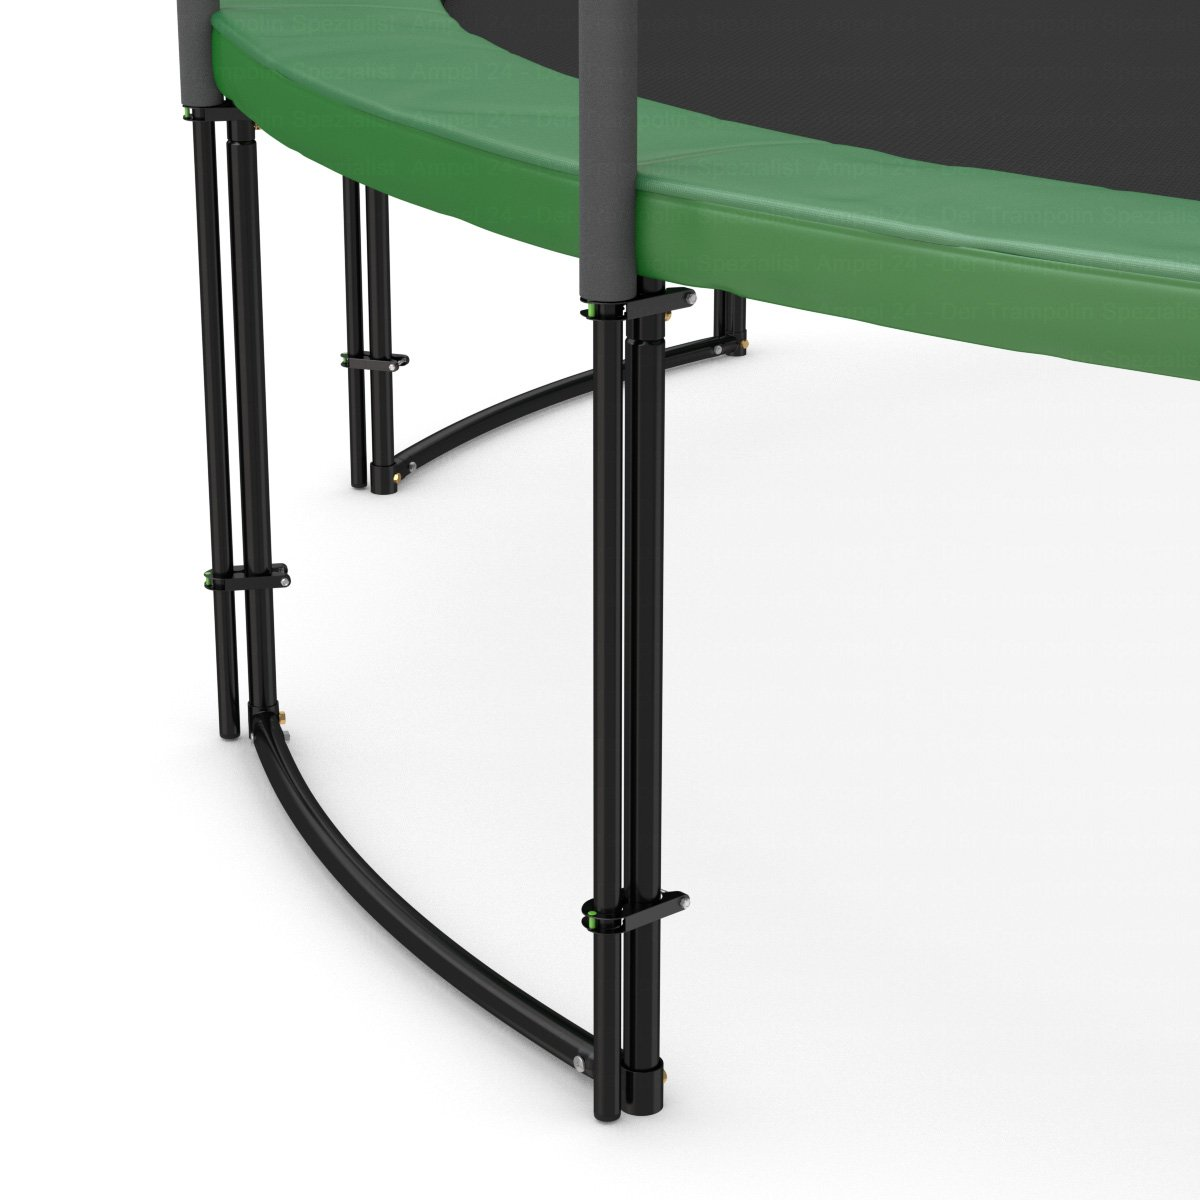 Ampel 24 Deluxe metal brackets for attaching the safety net poles Black Sturdy metal clamps for net poles with a diameter of 2,8 cm Frame diameter: 3,9 cm